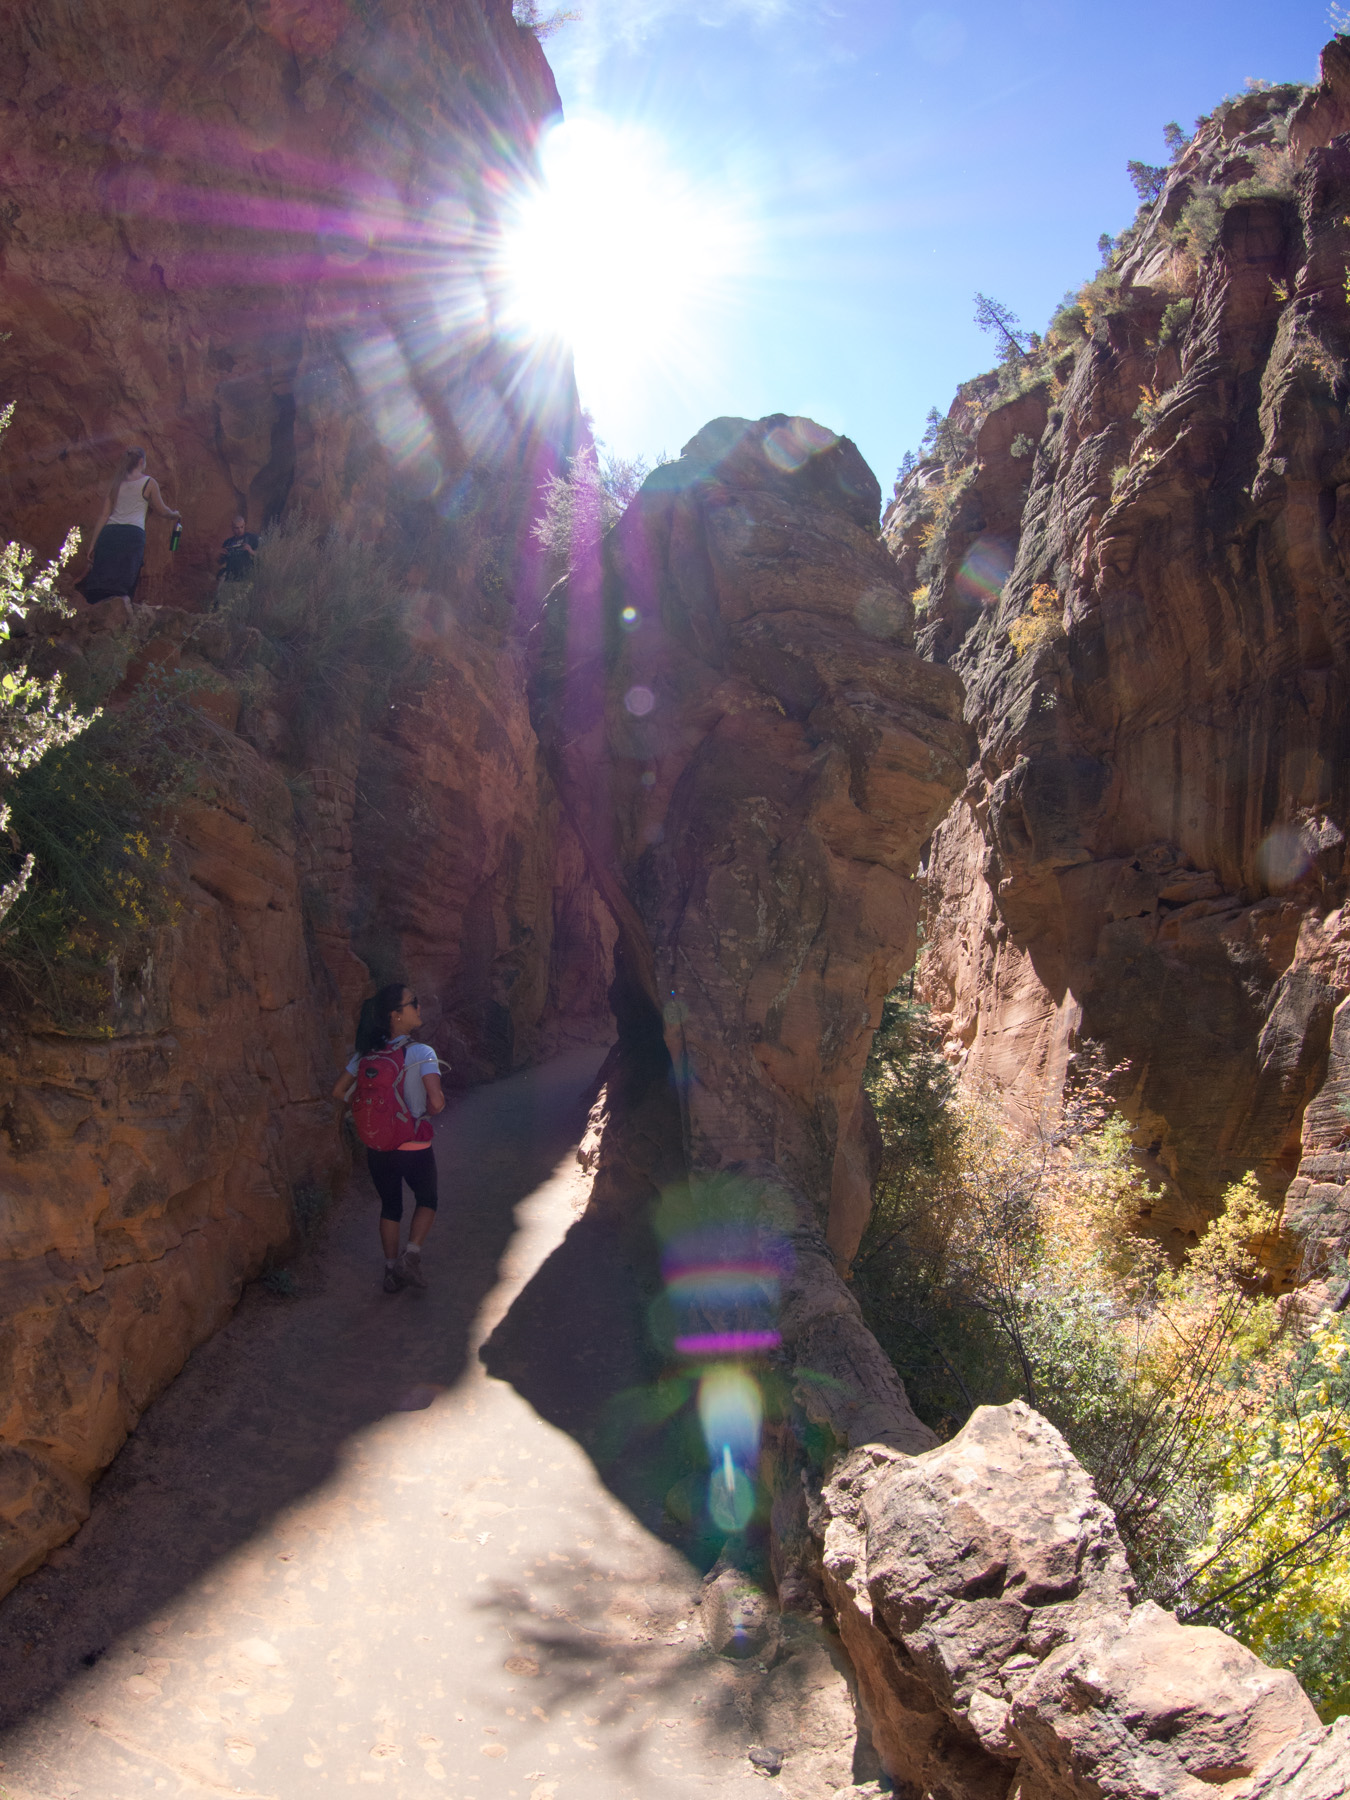 This portion of the trail winds through a canyon in the rear of the mountain